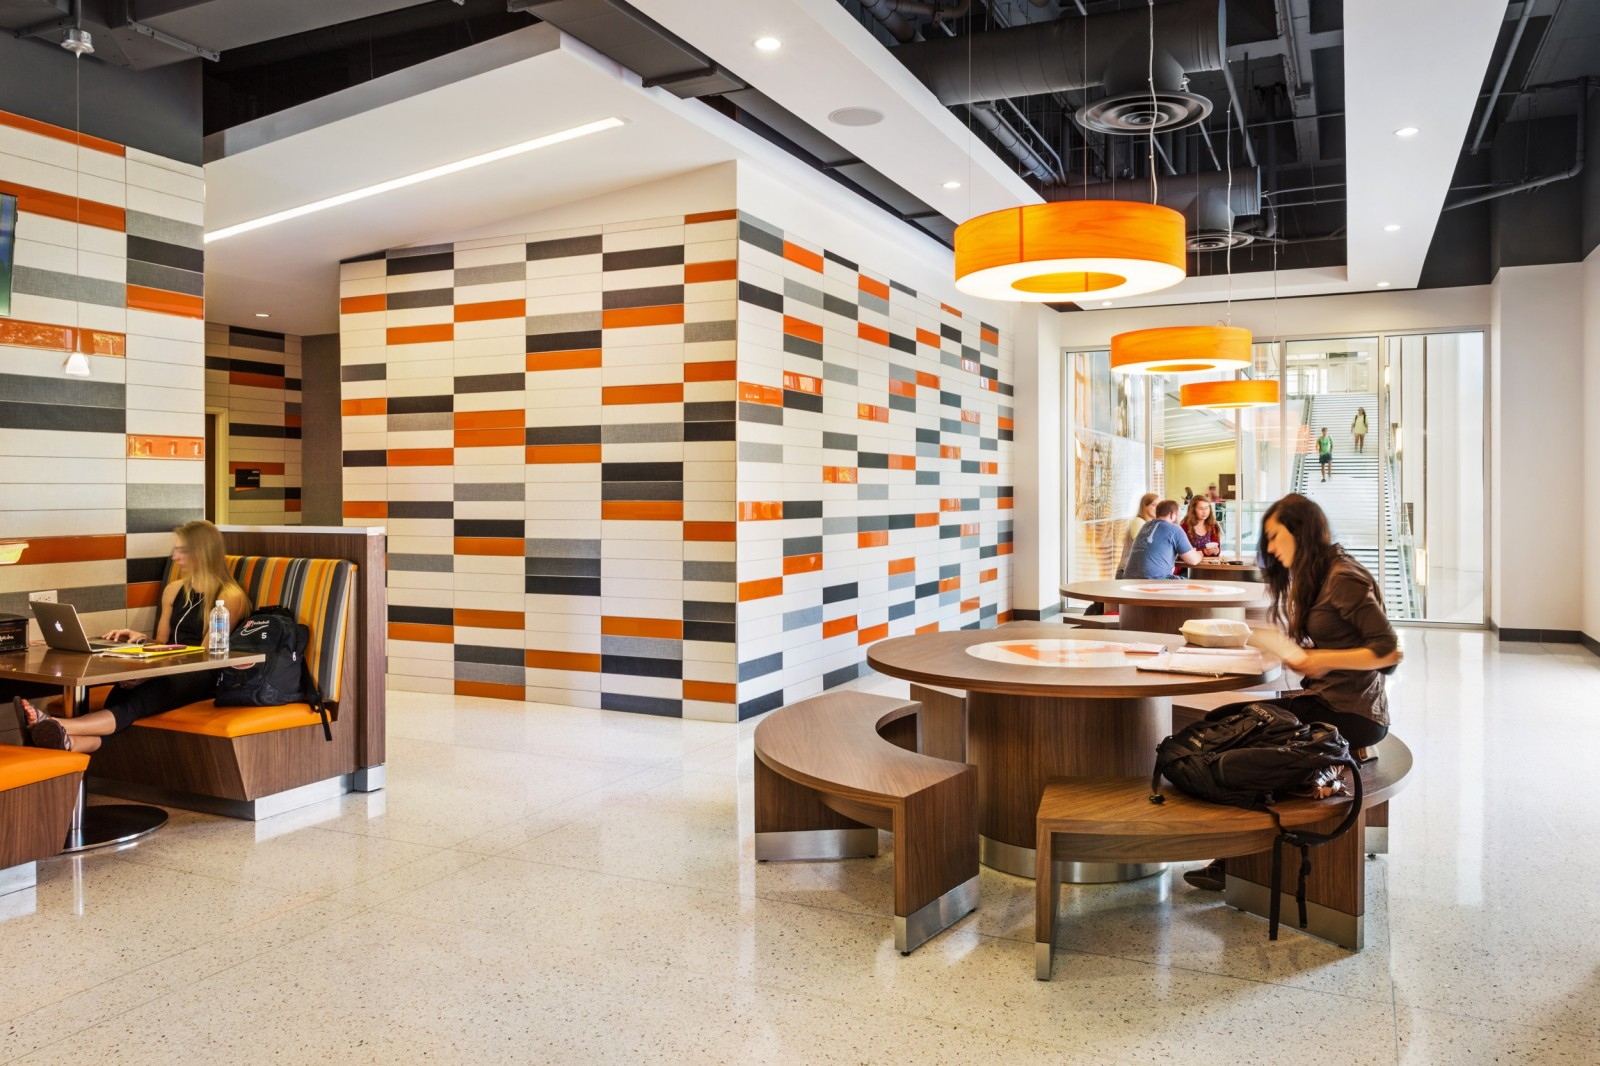 UTK Student Union - Tables and Tile